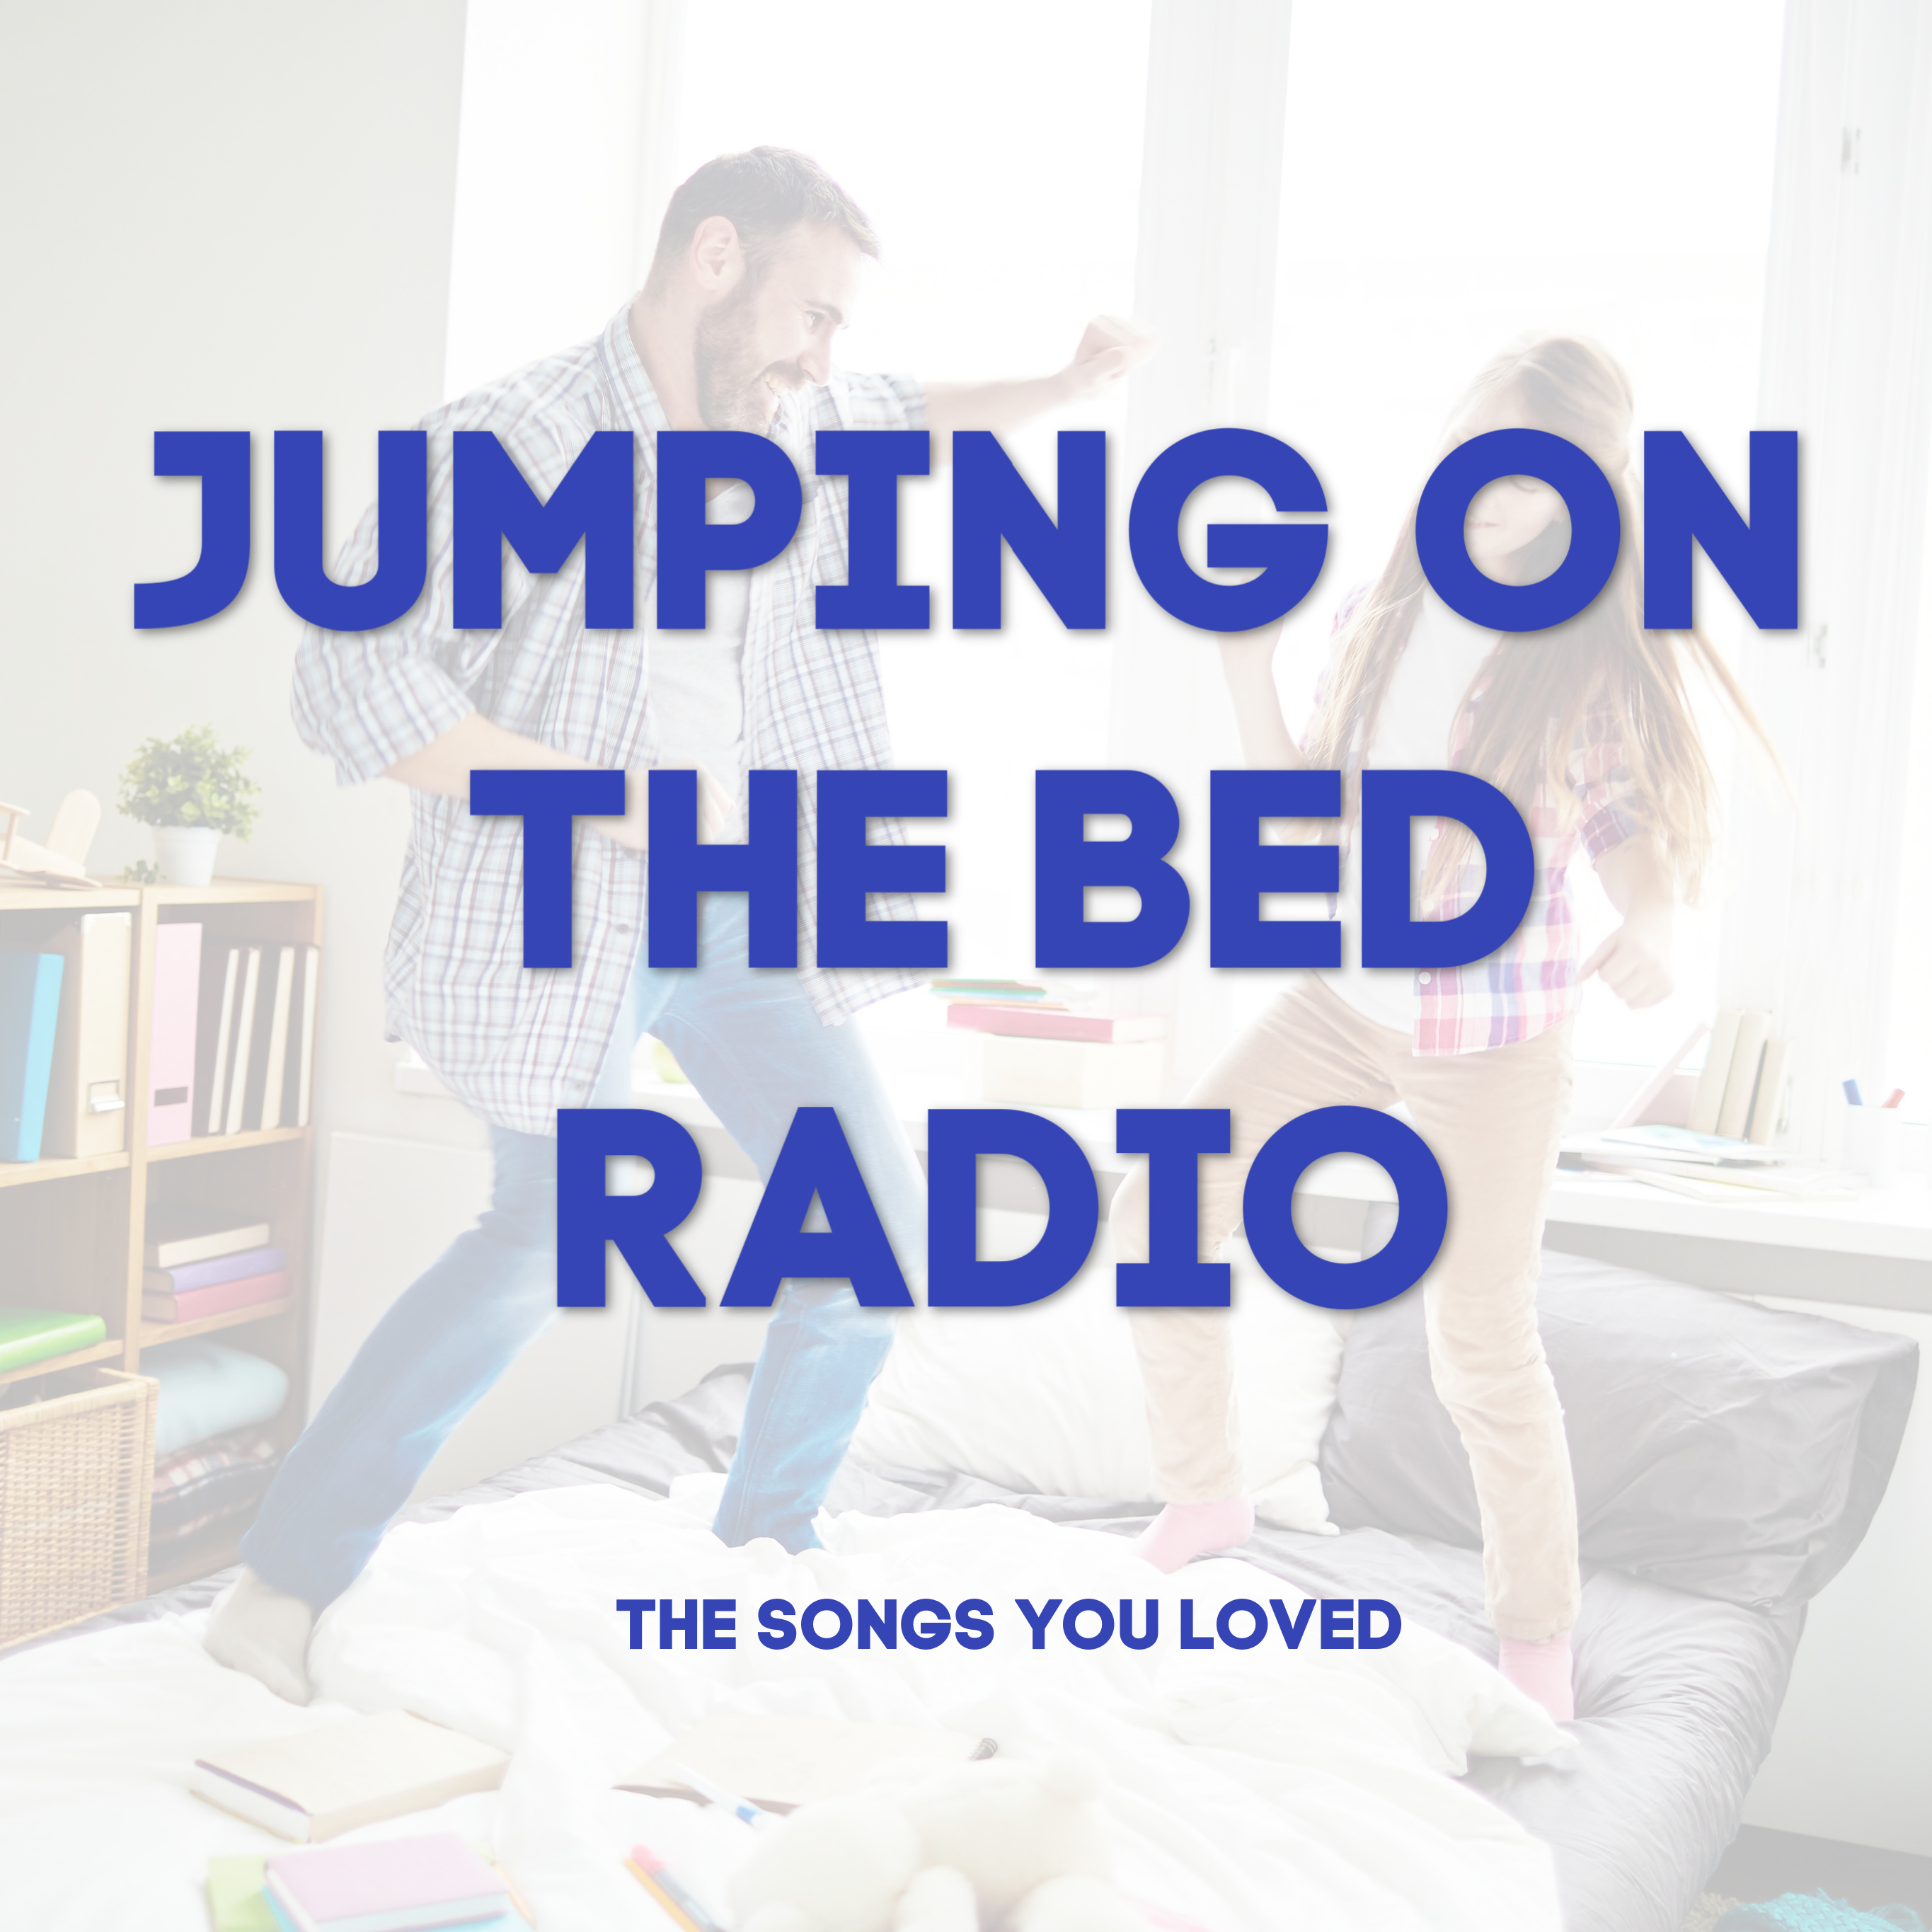 Jumping on the Bed logo